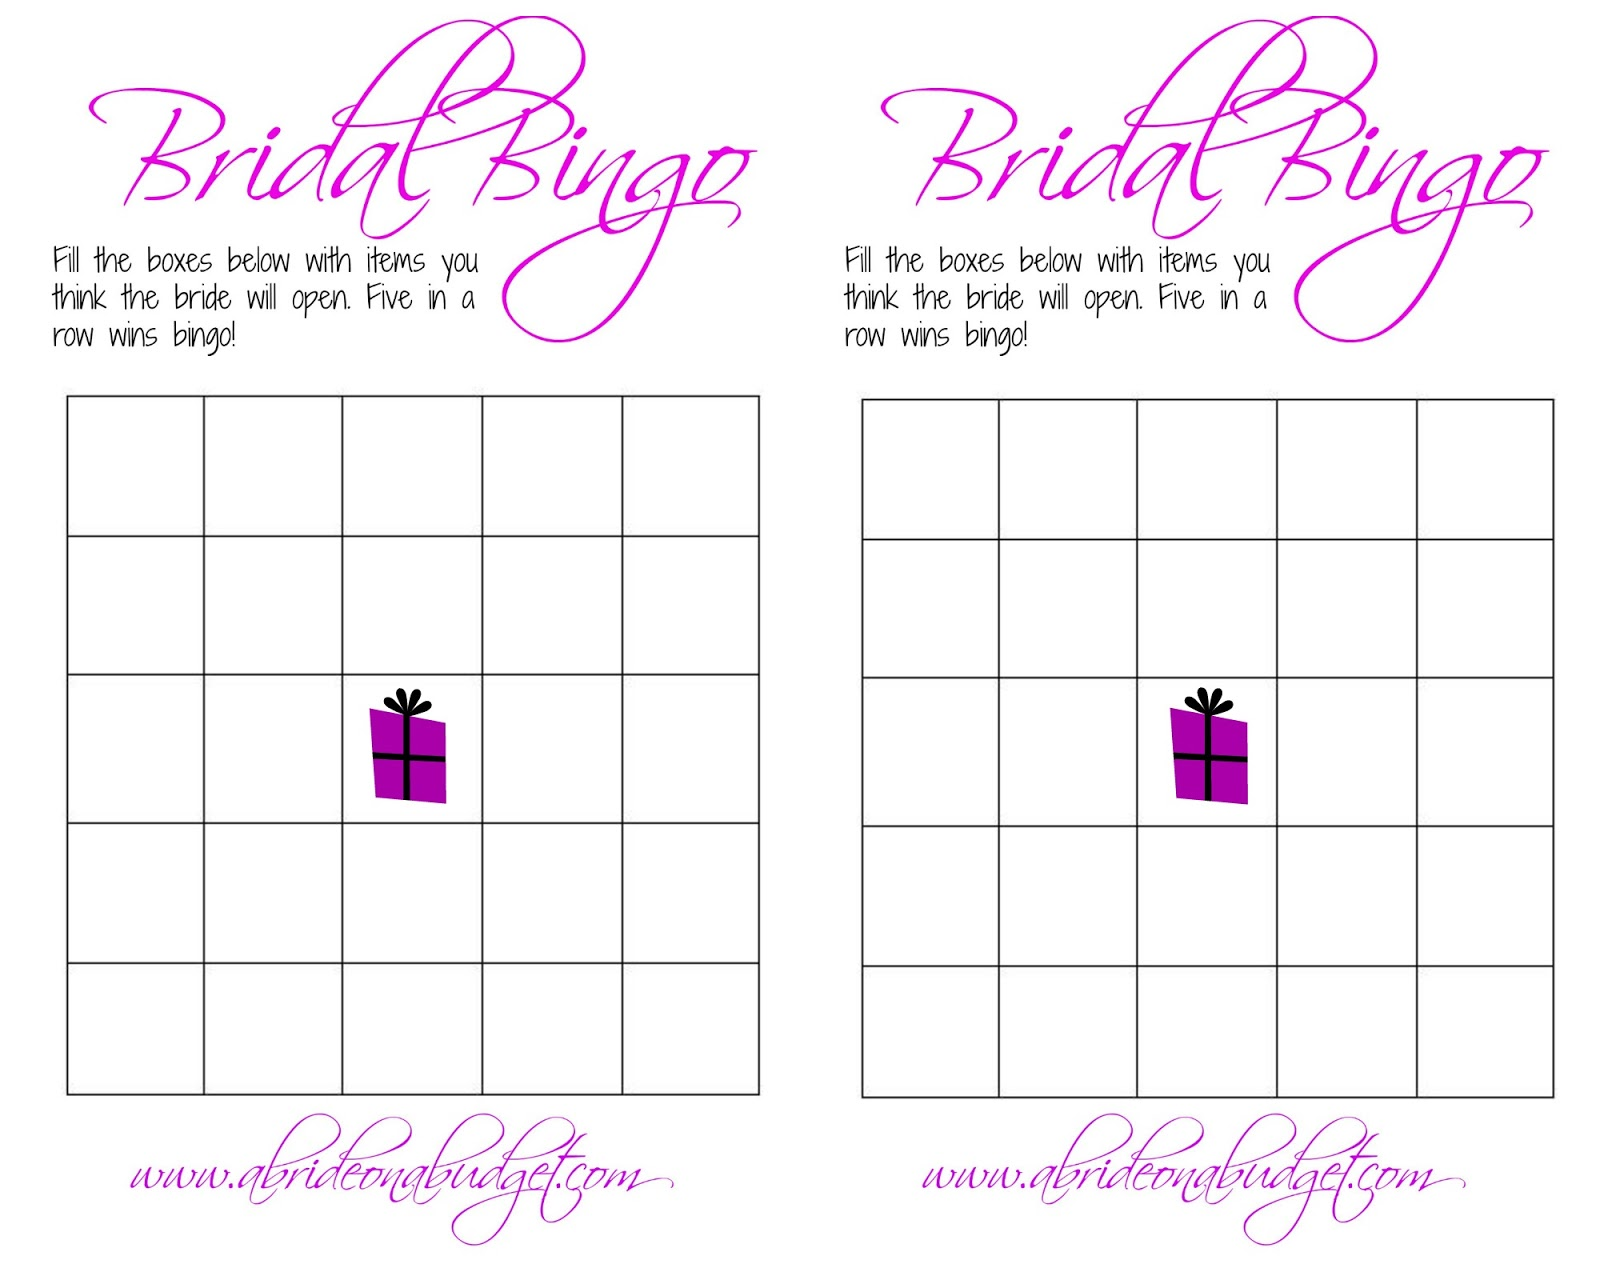 Declarative image intended for bridal shower bingo printable